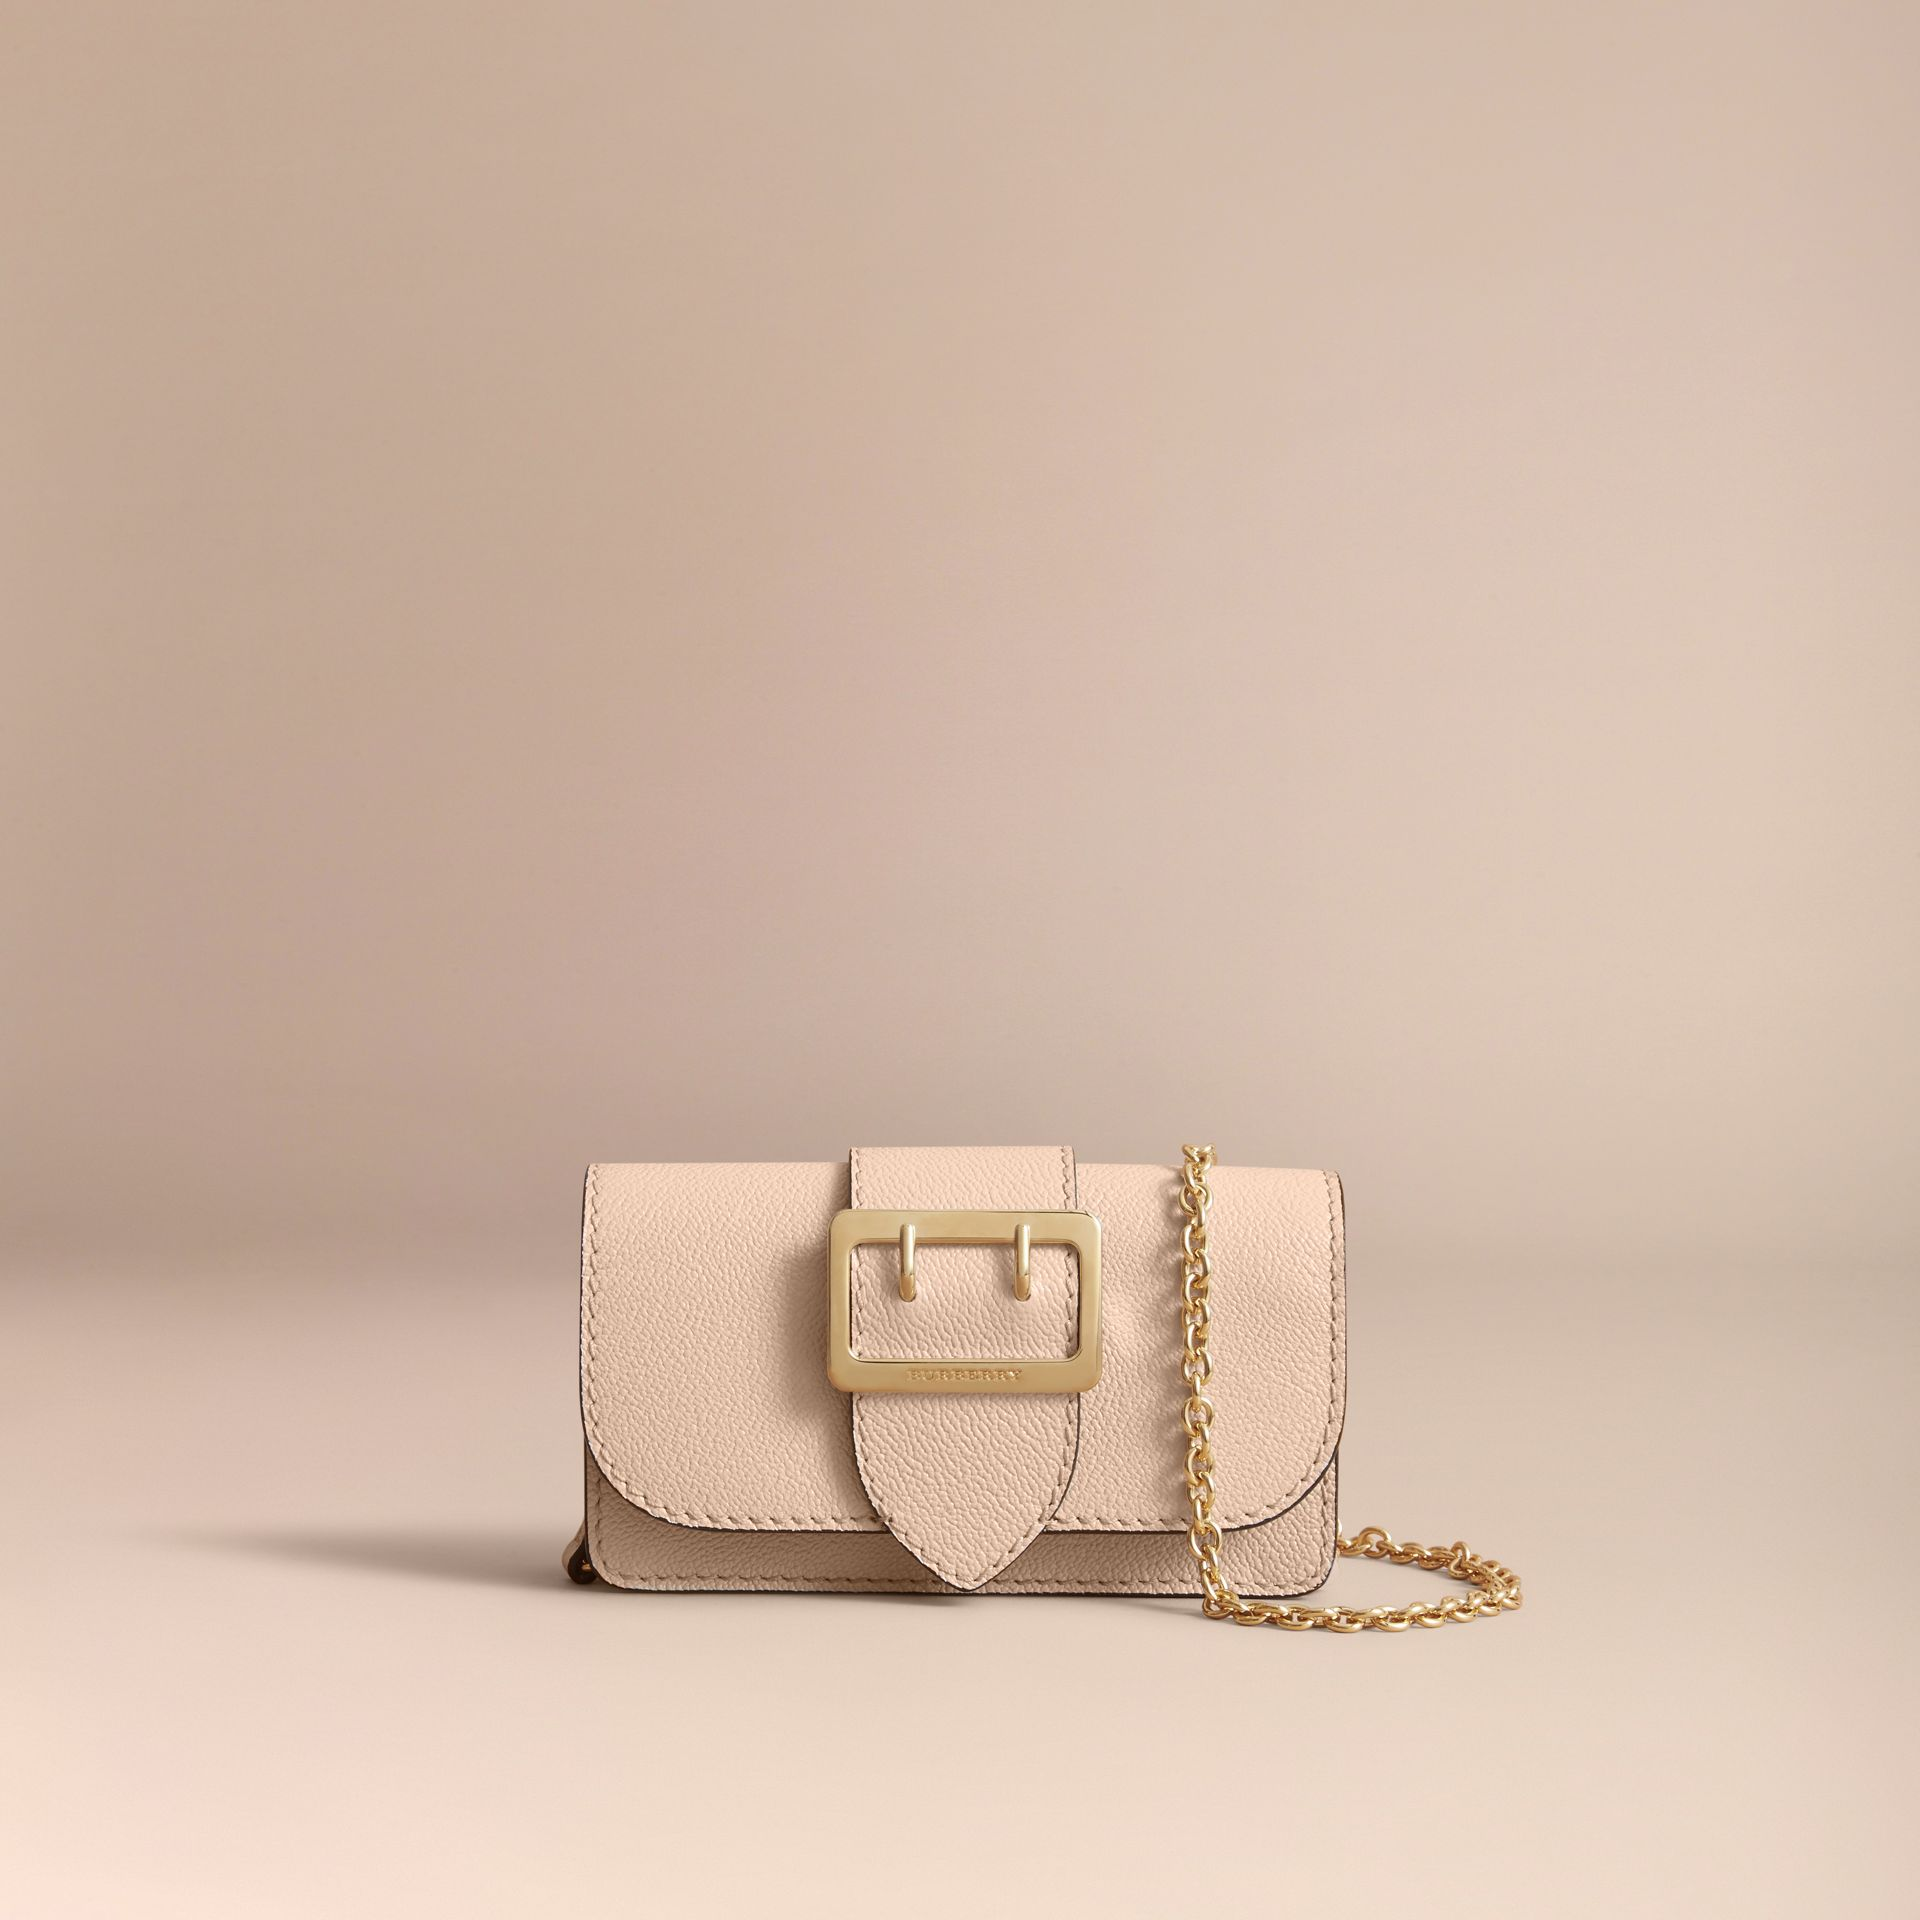 The Mini Buckle Bag in Grainy Leather in Limestone - Women | Burberry Australia - gallery image 7